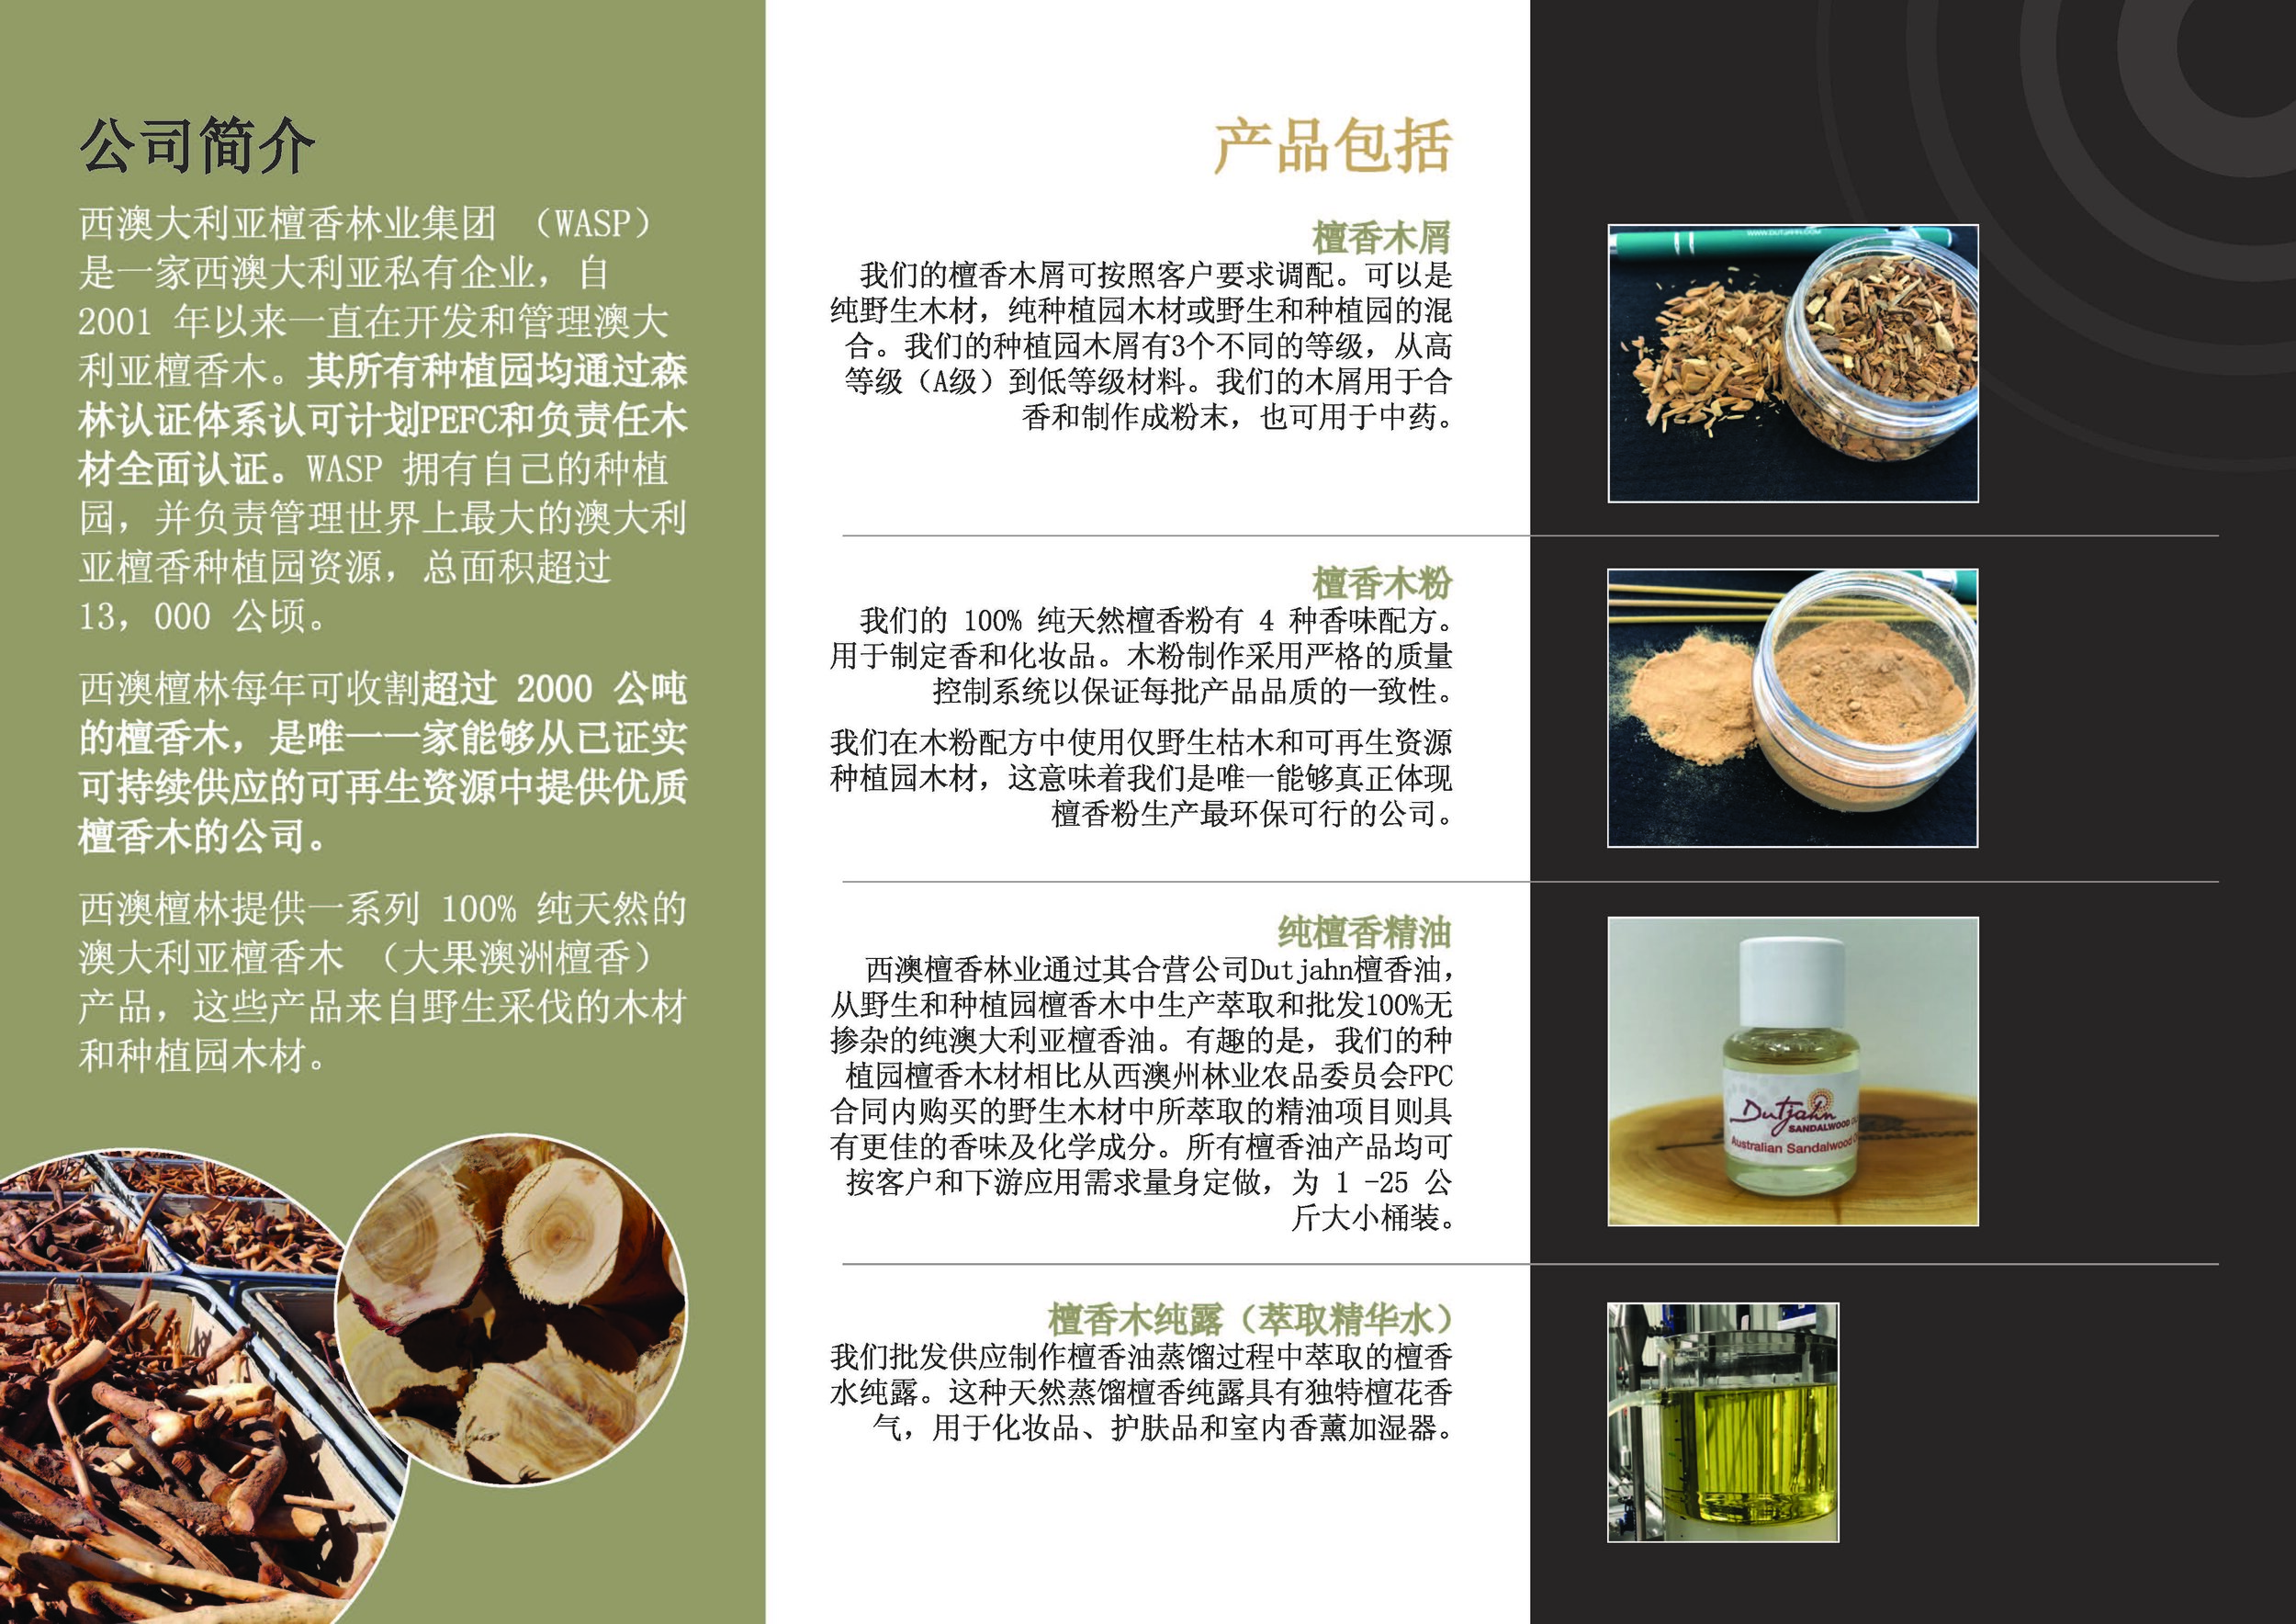 16213 WA Sandalwood DL-AWK-Chinese Version-v5_Page_2.jpg